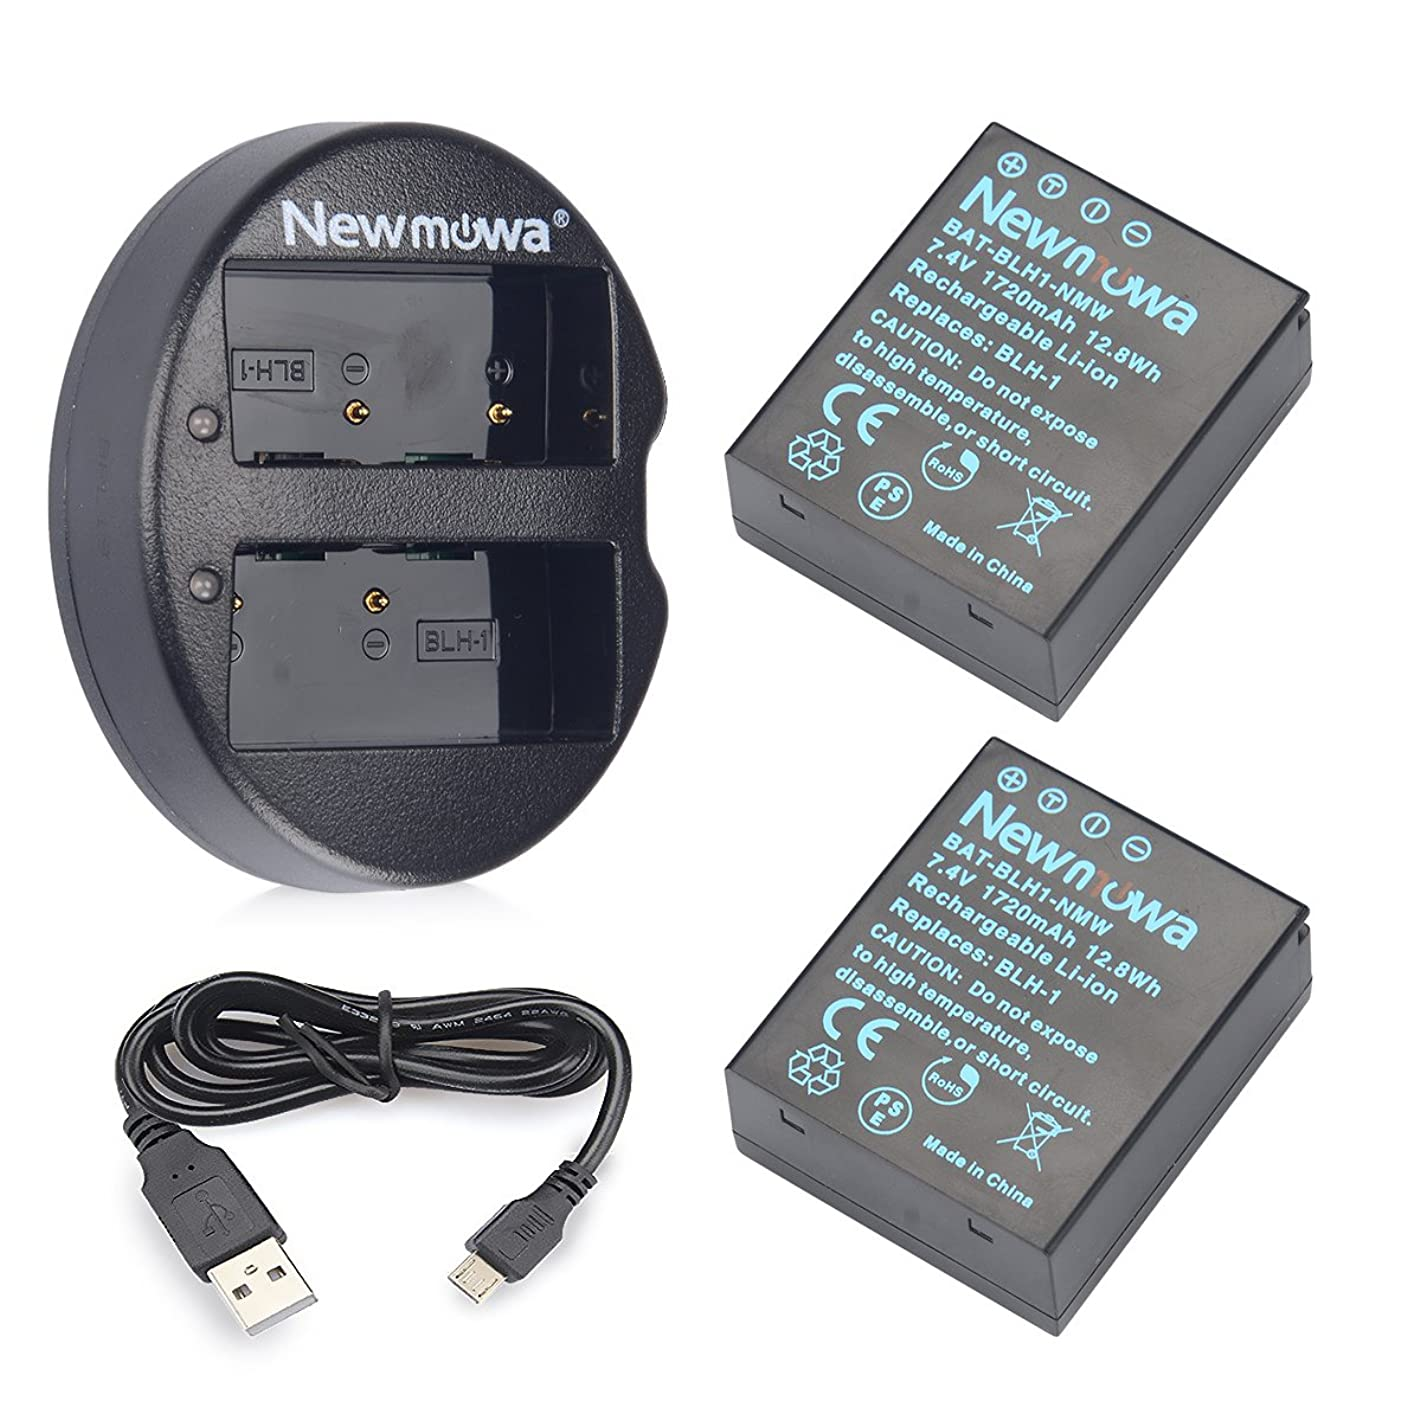 Newmowa BLH-1 Replacement Battery (2 Pack) and Dual USB Charger for Olympus BLH-1 and Olympus EM1 Mark II Camera(Half-Decoded)